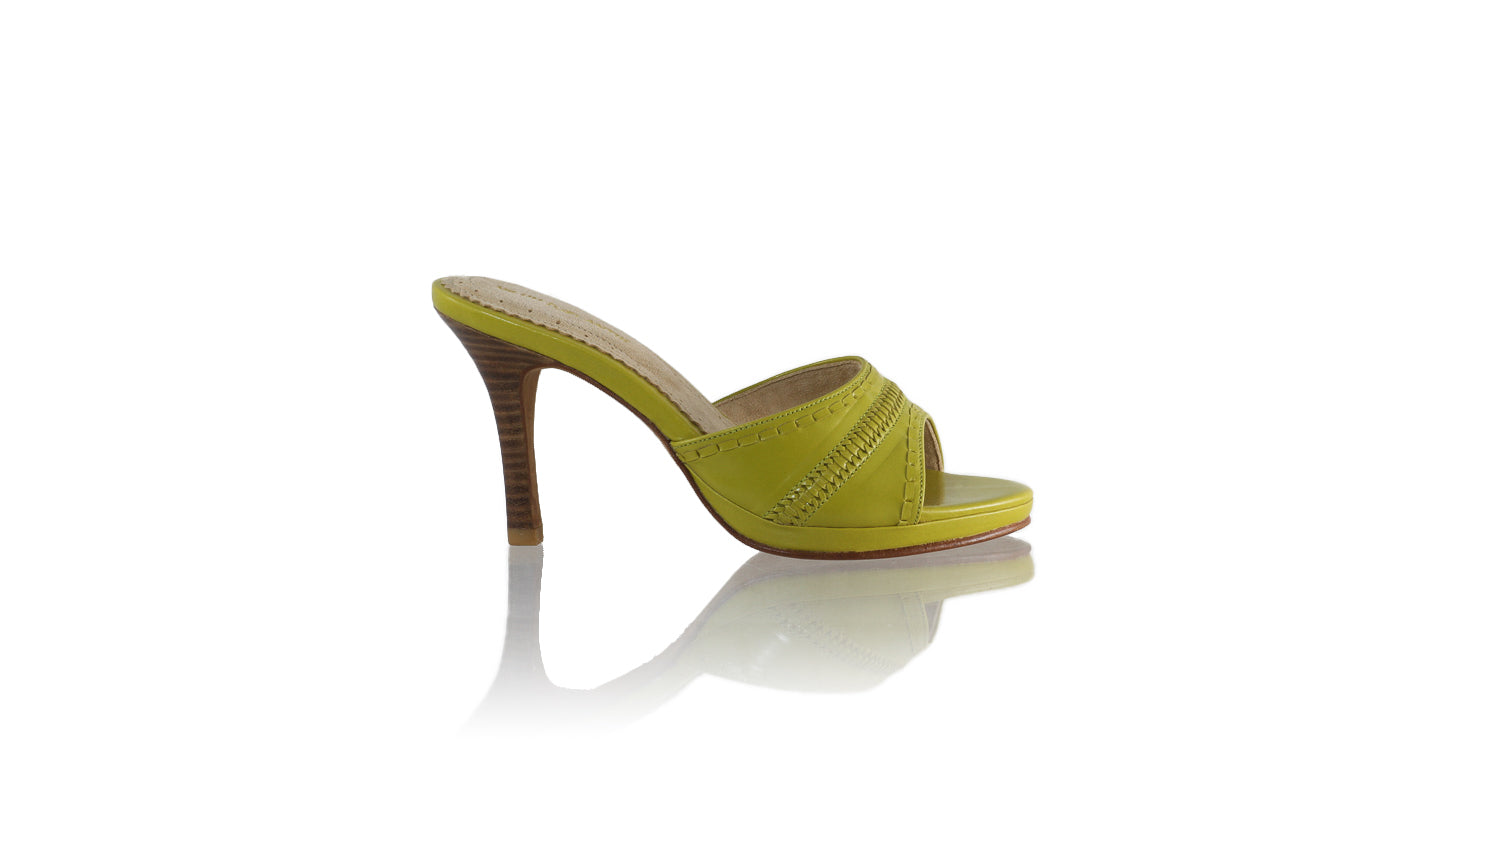 Leather-shoes-Kartini 90MM SH PF - Deep Lime Green-sandals flat-NILUH DJELANTIK-NILUH DJELANTIK